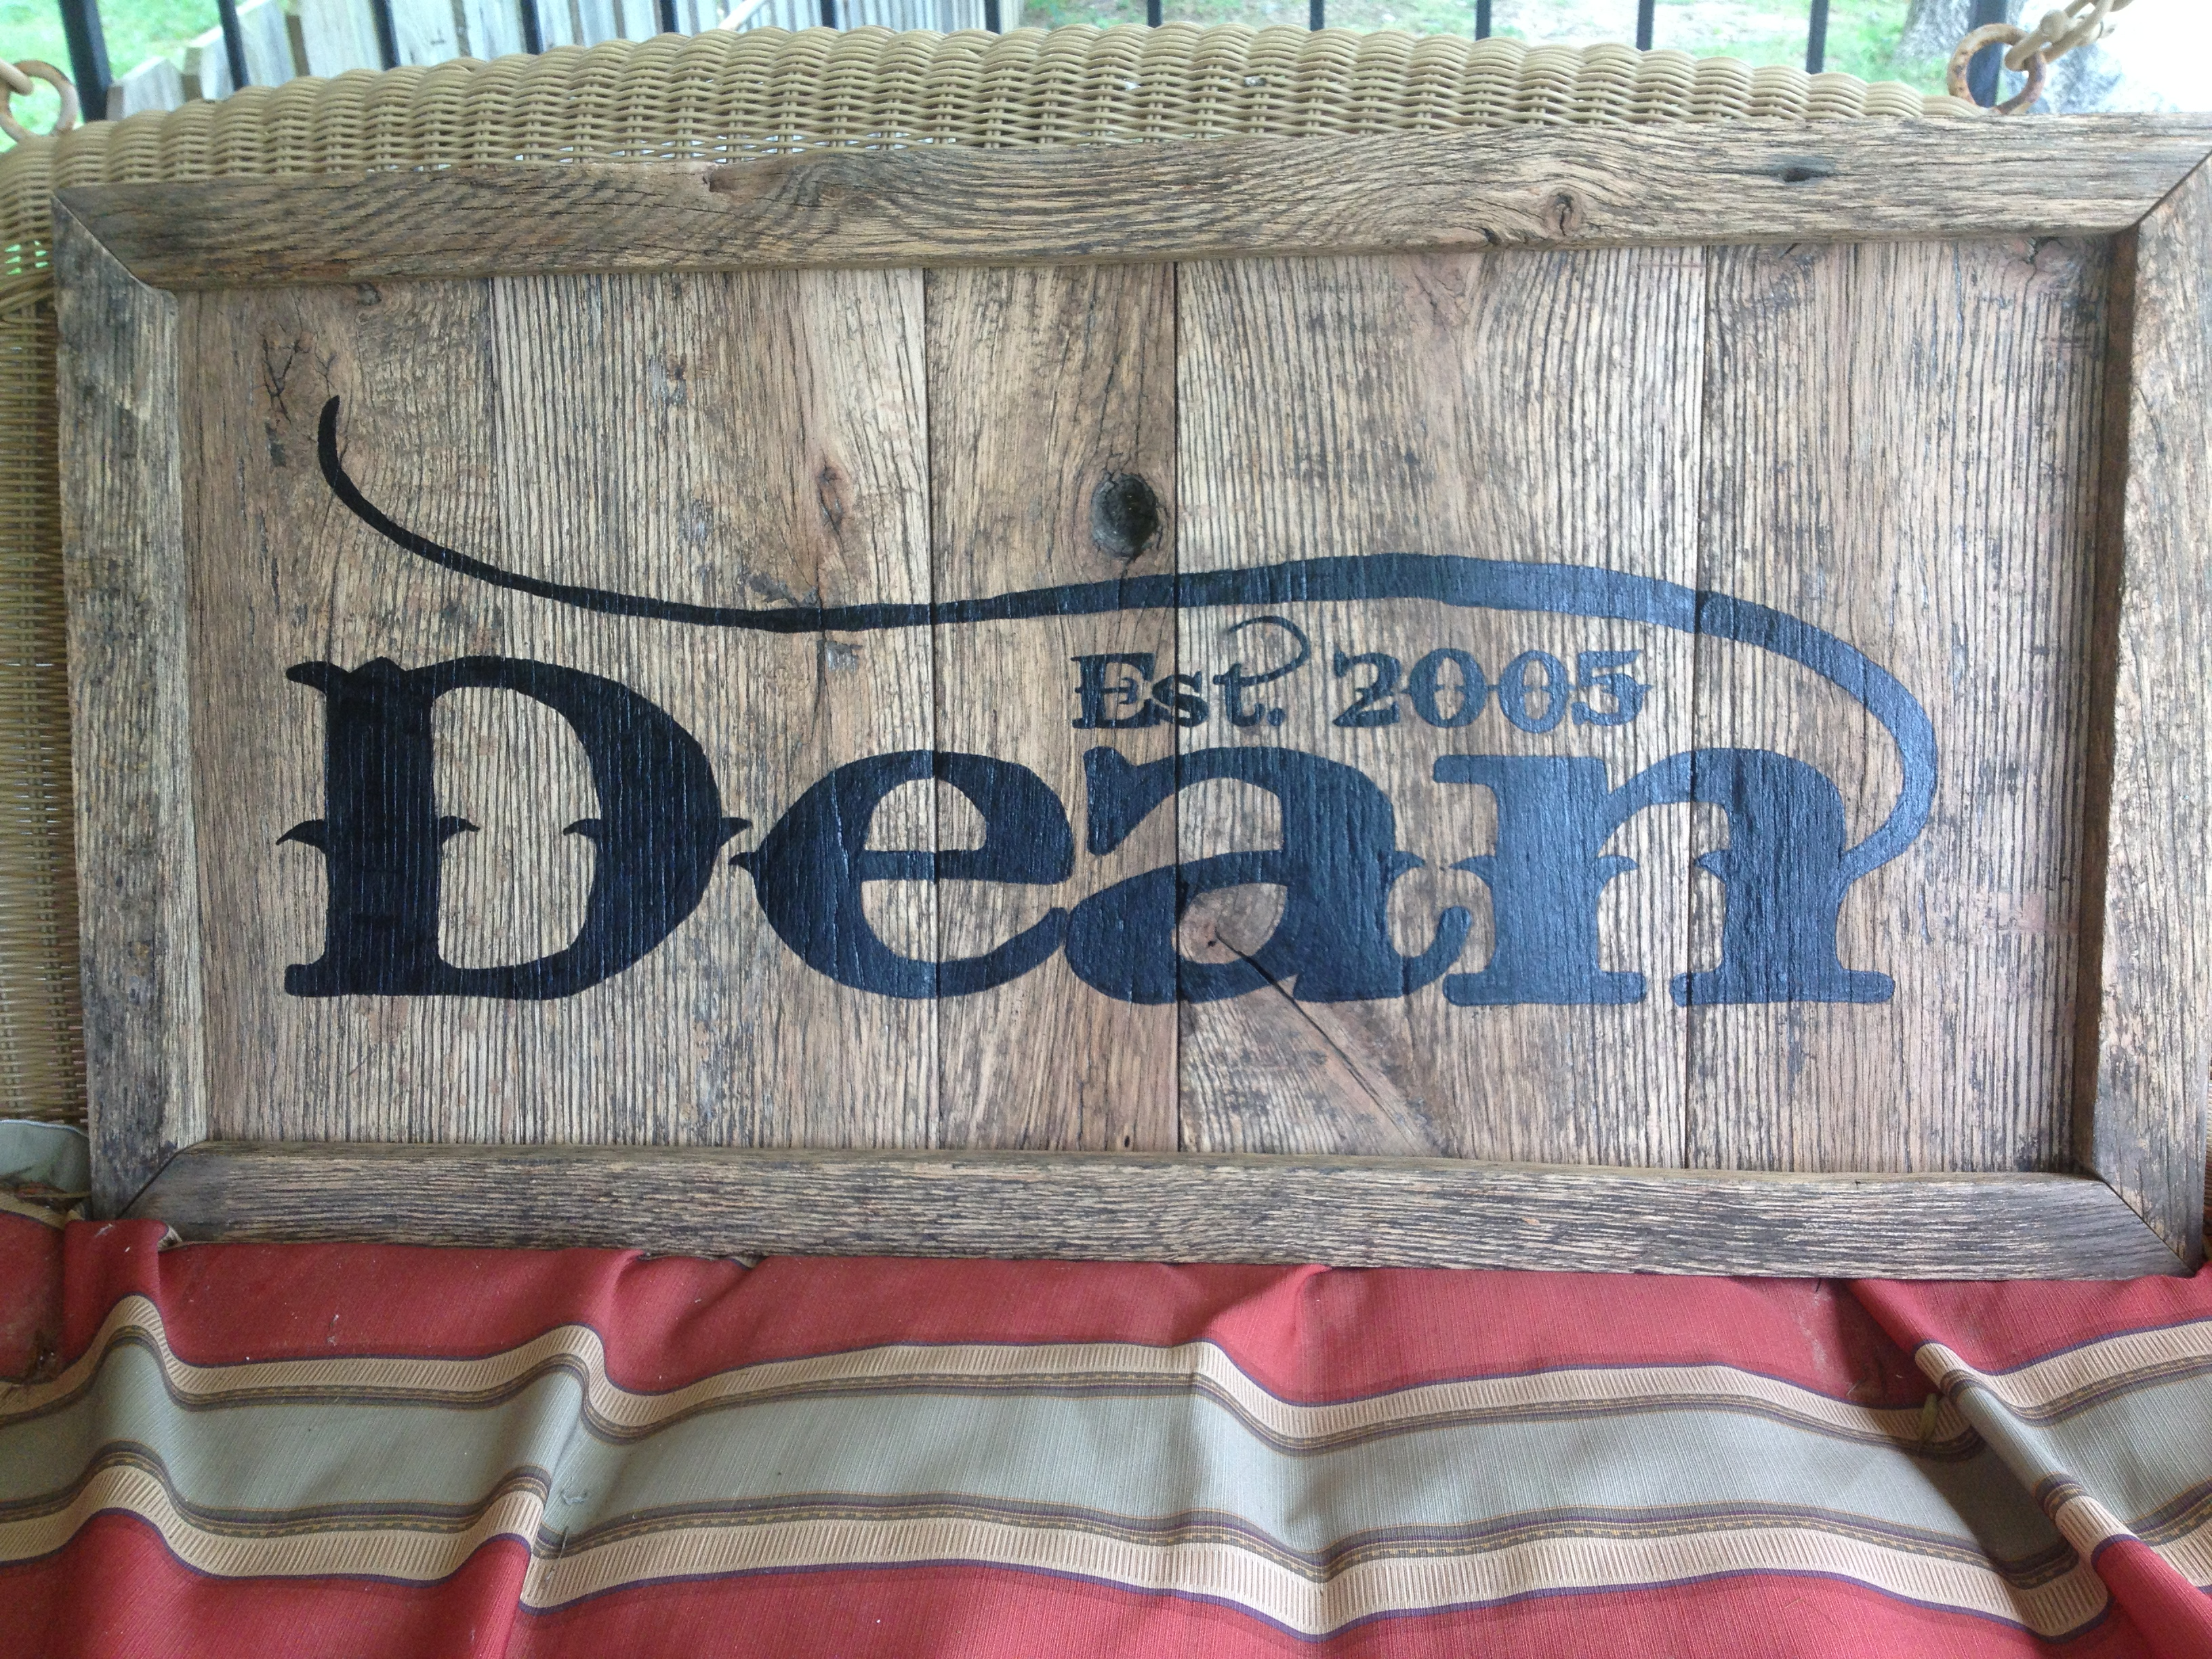 RUSTIC HANDPAINTED NAME SIGNS